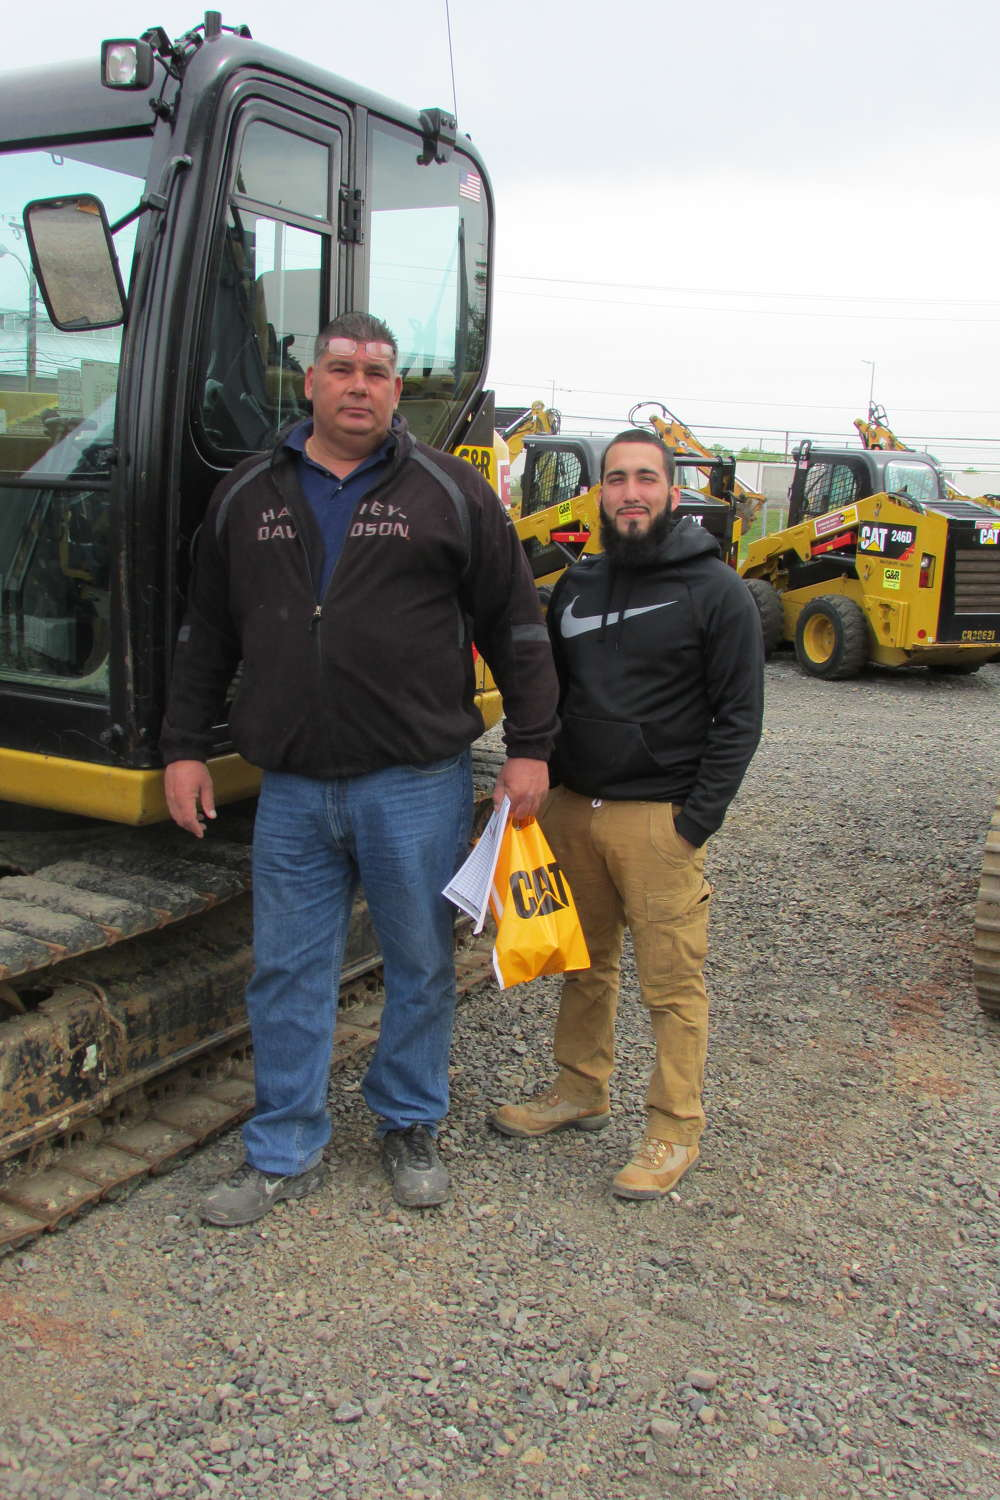 John Talmo (L), owner/operator, and Warren McMilin, both of Eastcoast Excavating LLC, spent a lot of time at the One Day Sale looking for bargains.